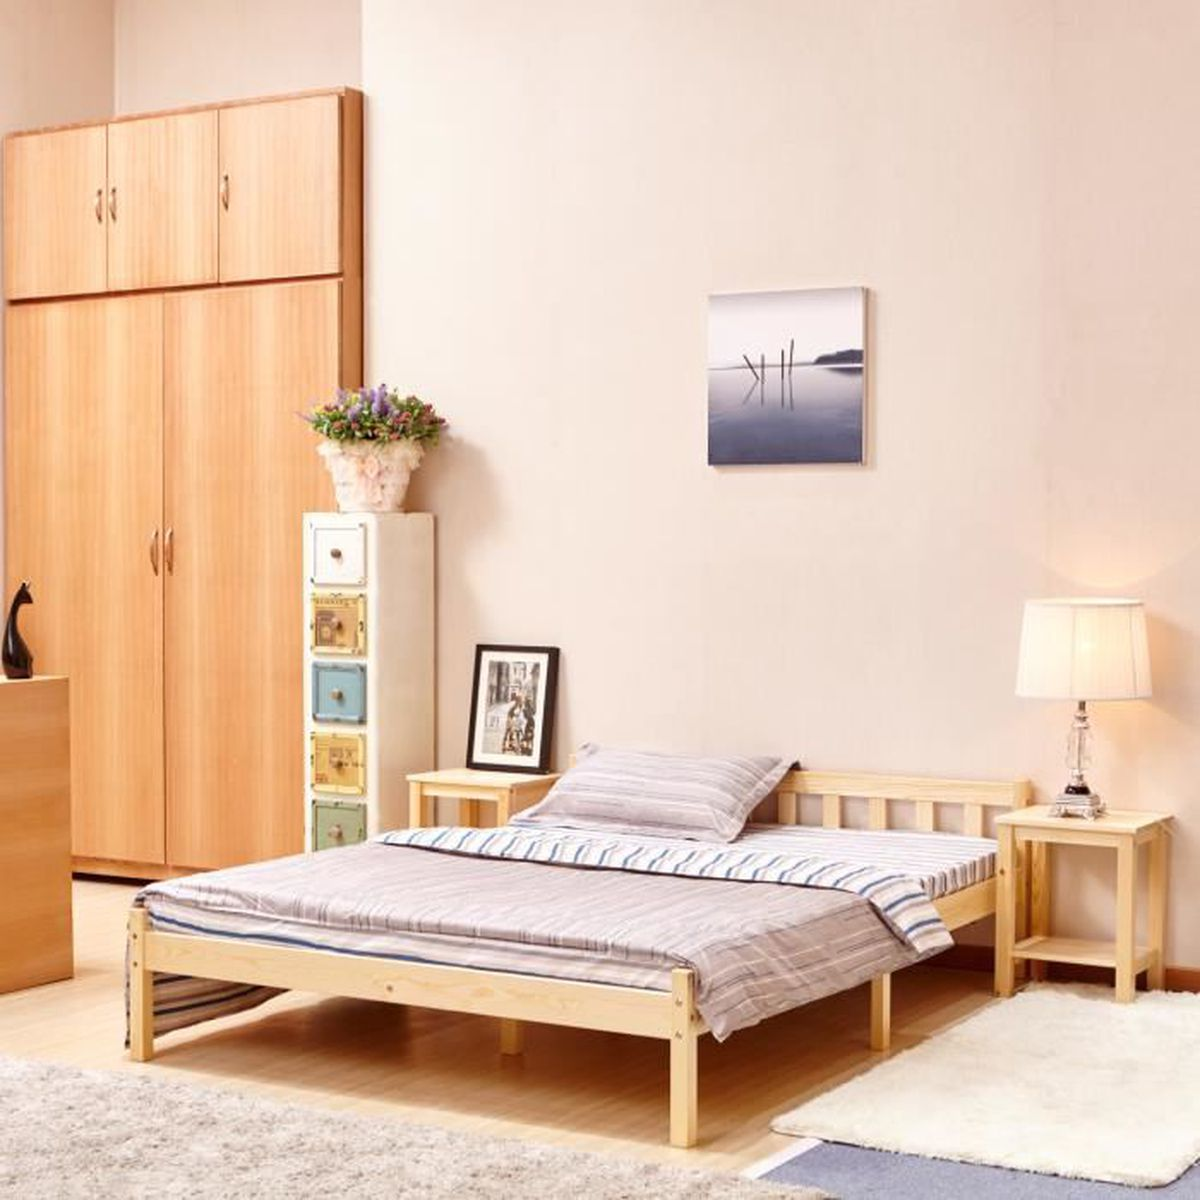 cadre de lit double en bois 190 x 140 cm achat vente. Black Bedroom Furniture Sets. Home Design Ideas